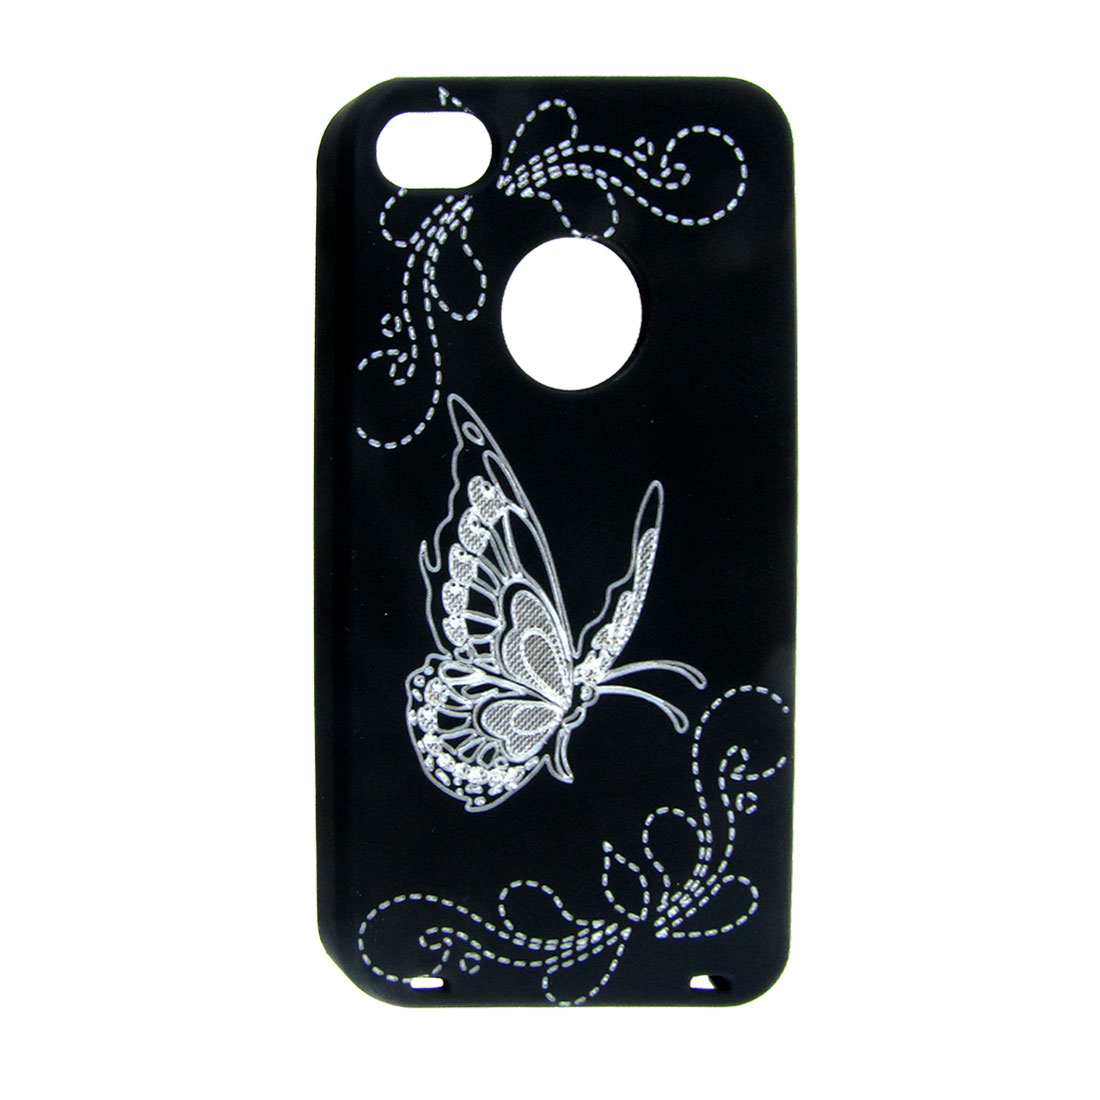 Black Rubberized Plastic Laser-cut Butterfly Back Cover for iPhone 4 4G 4S